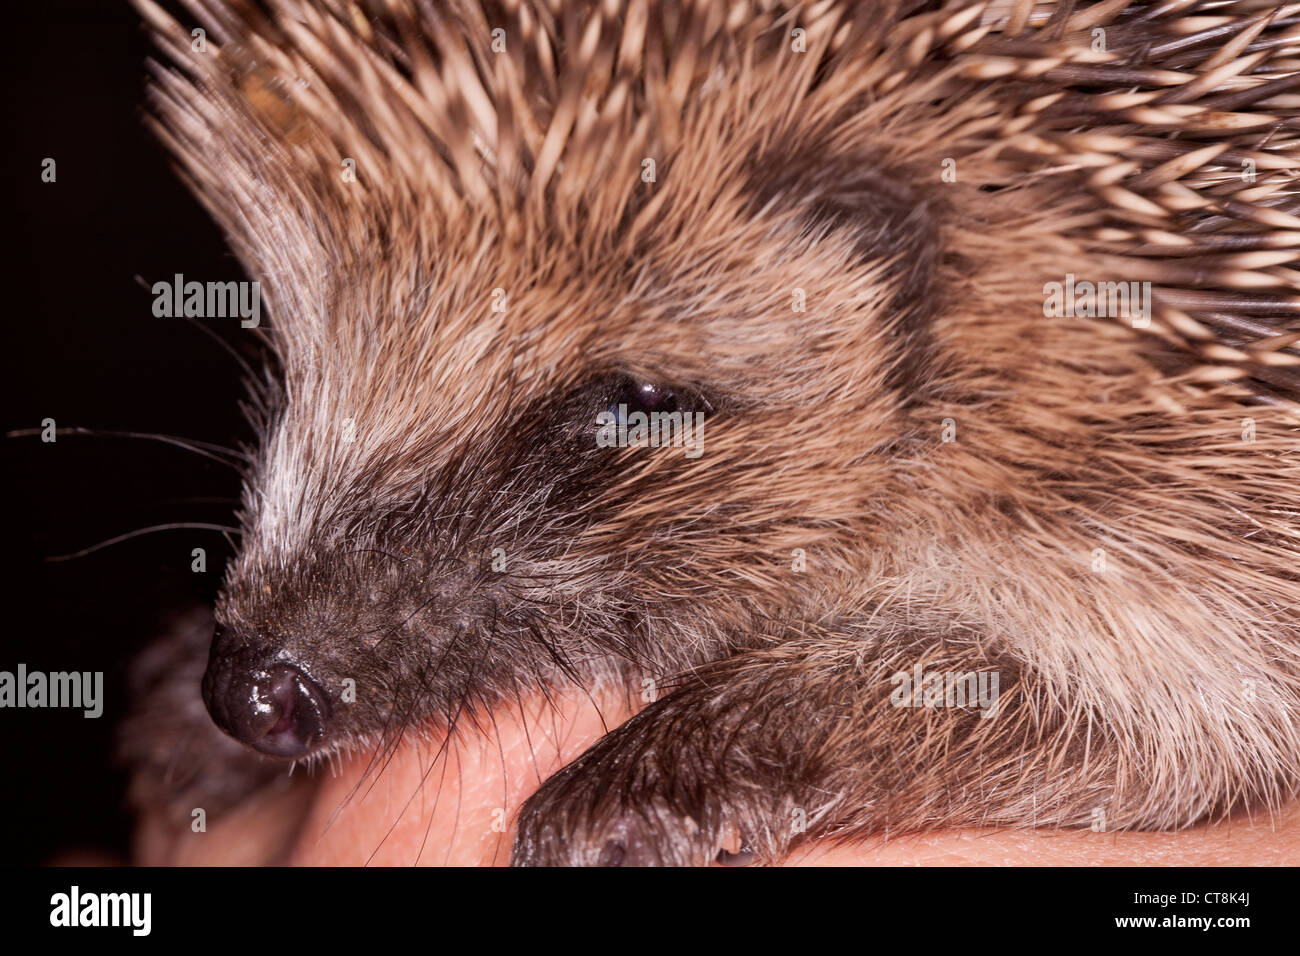 Close up of a baby hedgehog sitting on a hand - Stock Image